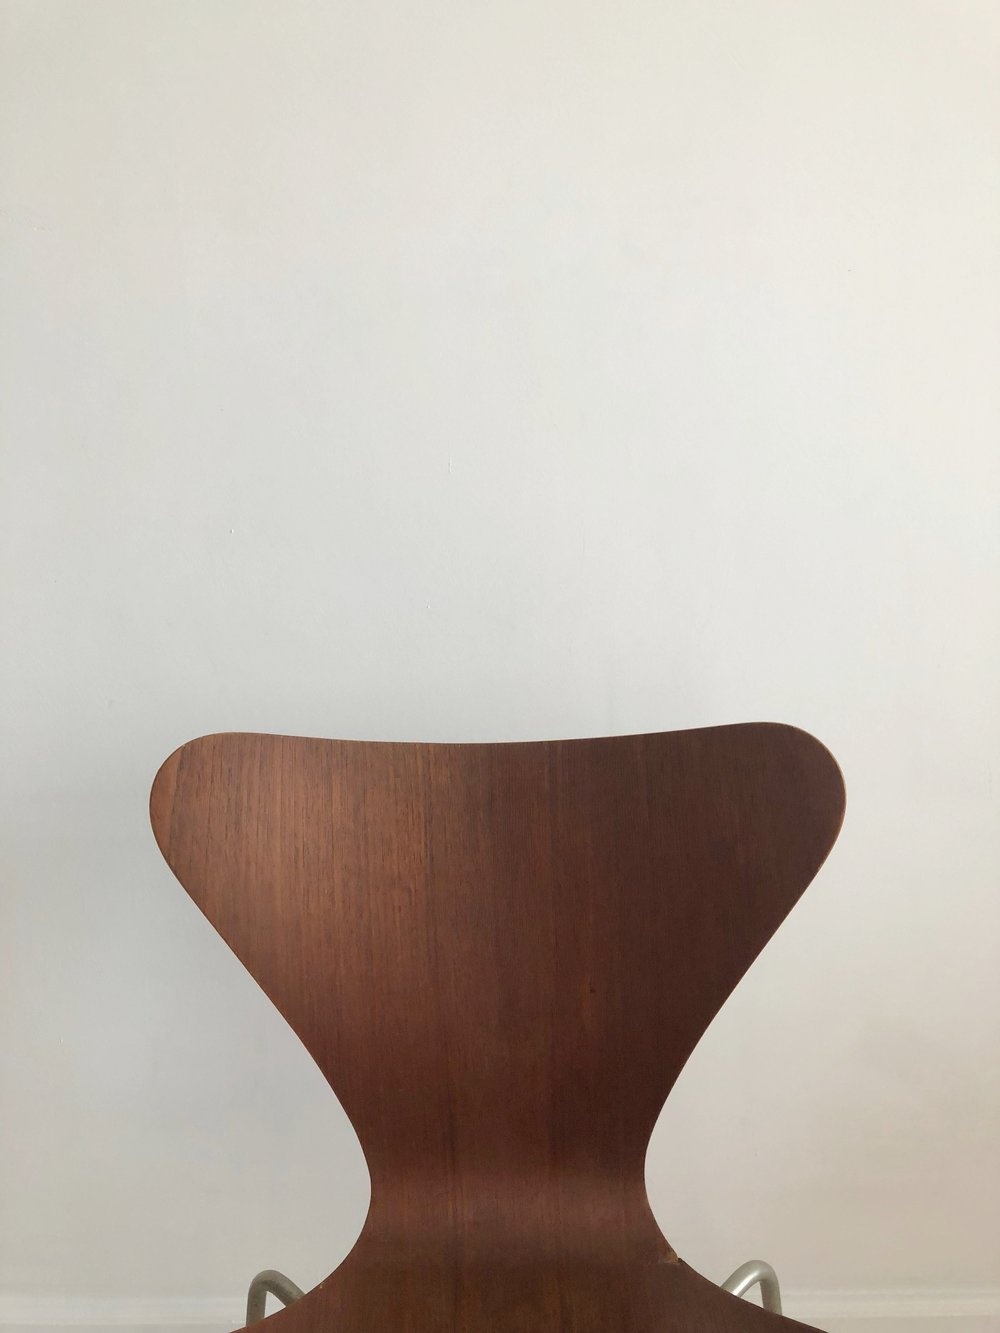 "Mid Century Danish Arne Jacobsen for Fritz Hansen Bent Teak"" Serious 7"" Chair"